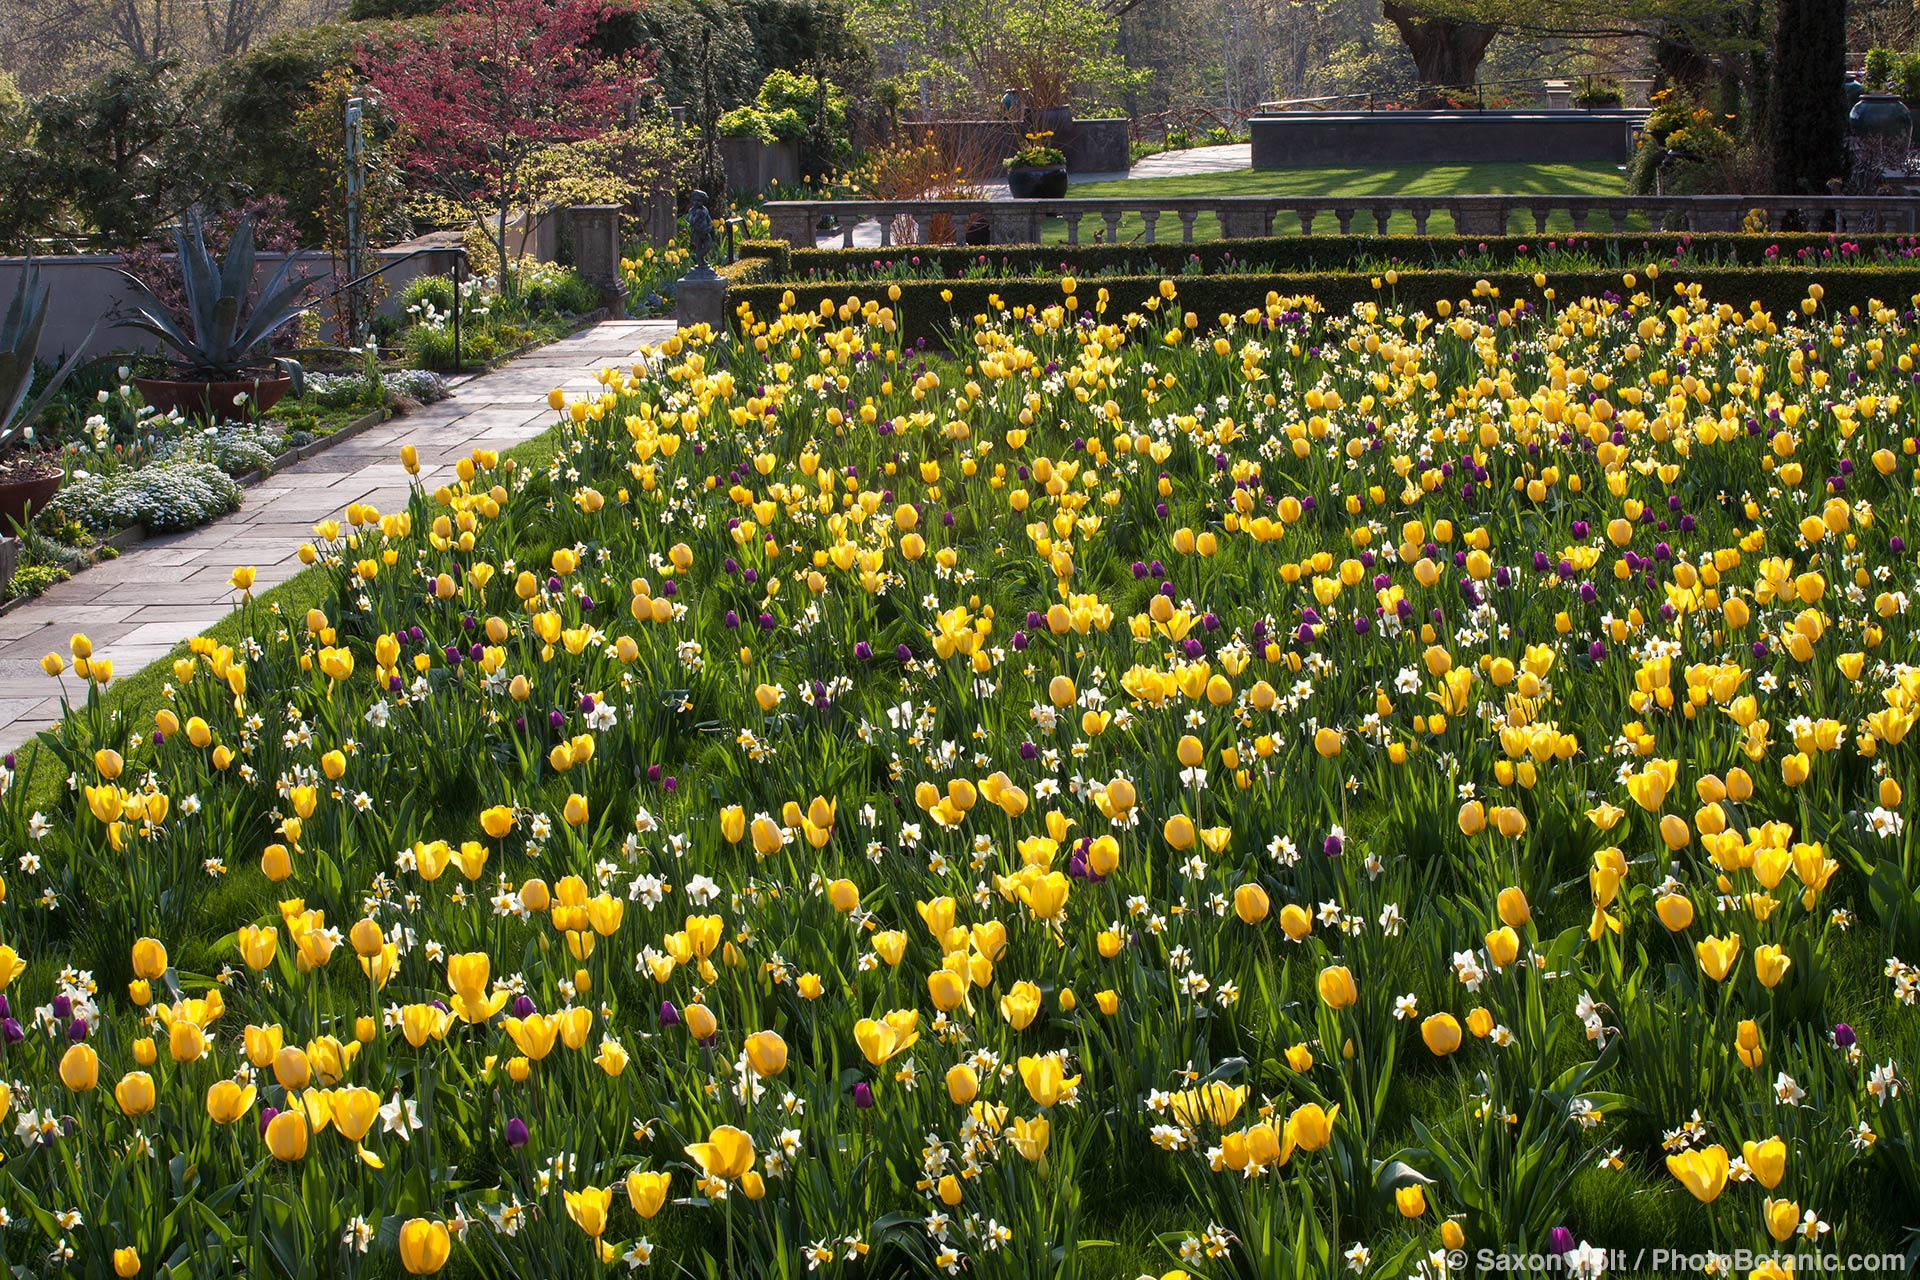 Spring tulips at Chanticleer Garden